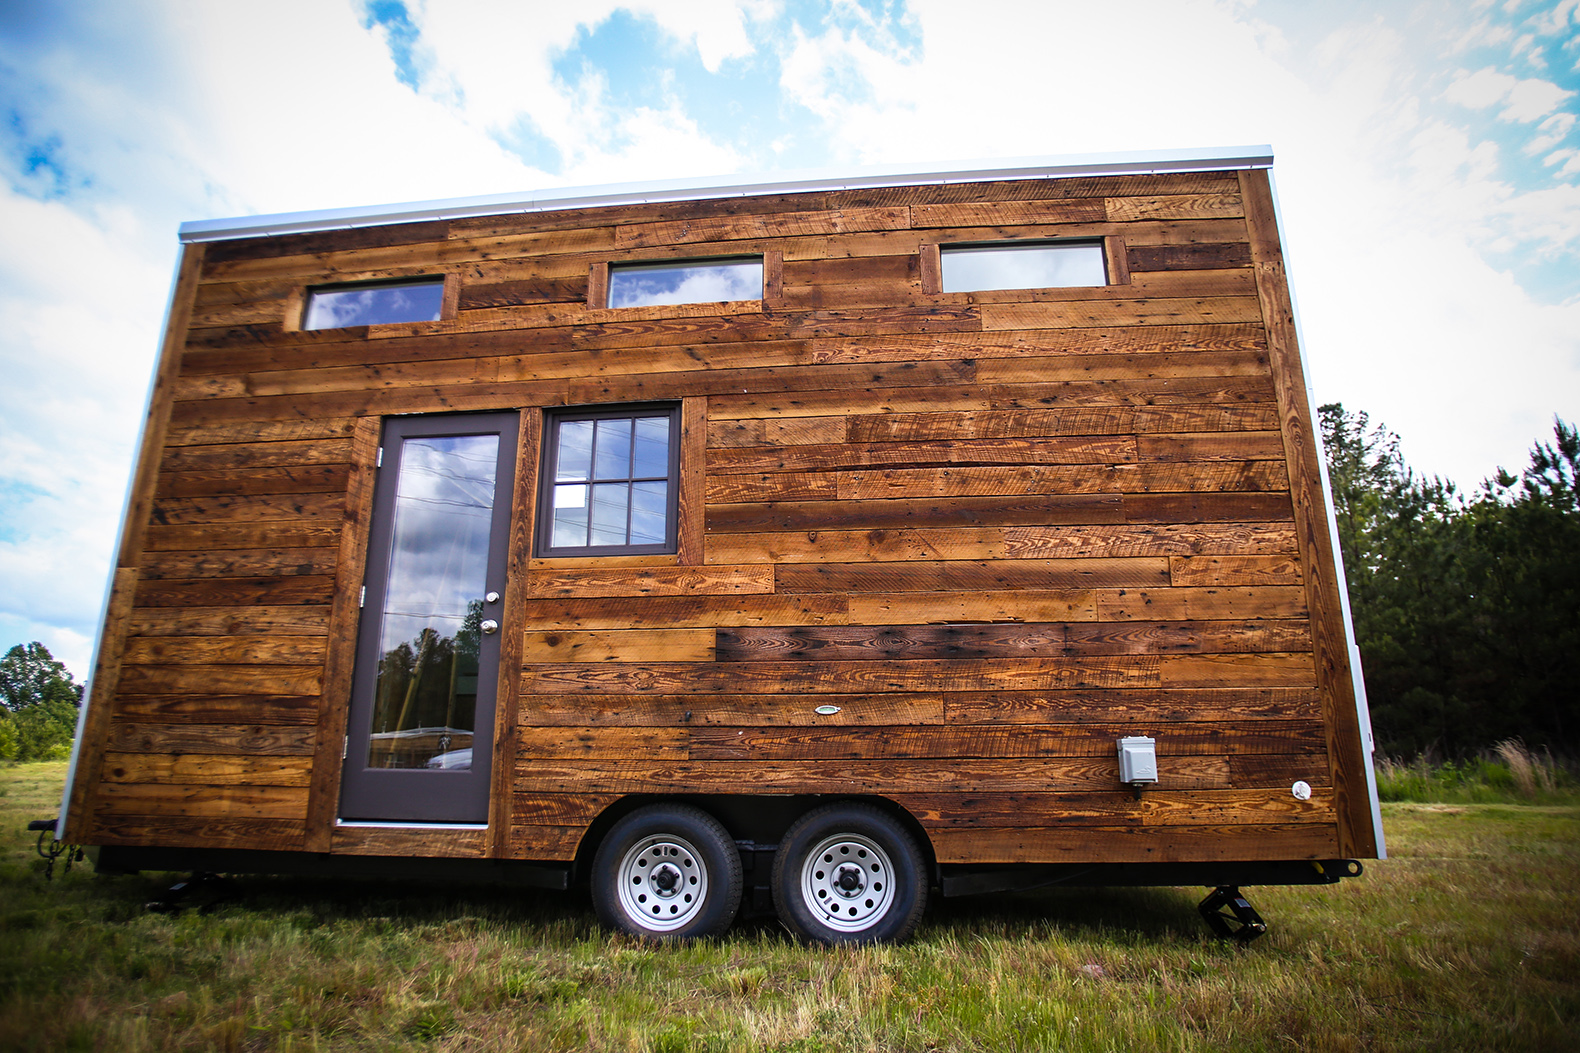 Lamon Luther, Brian Preston, Wood, Reclaimed Wood, Furniture, Tiny House,